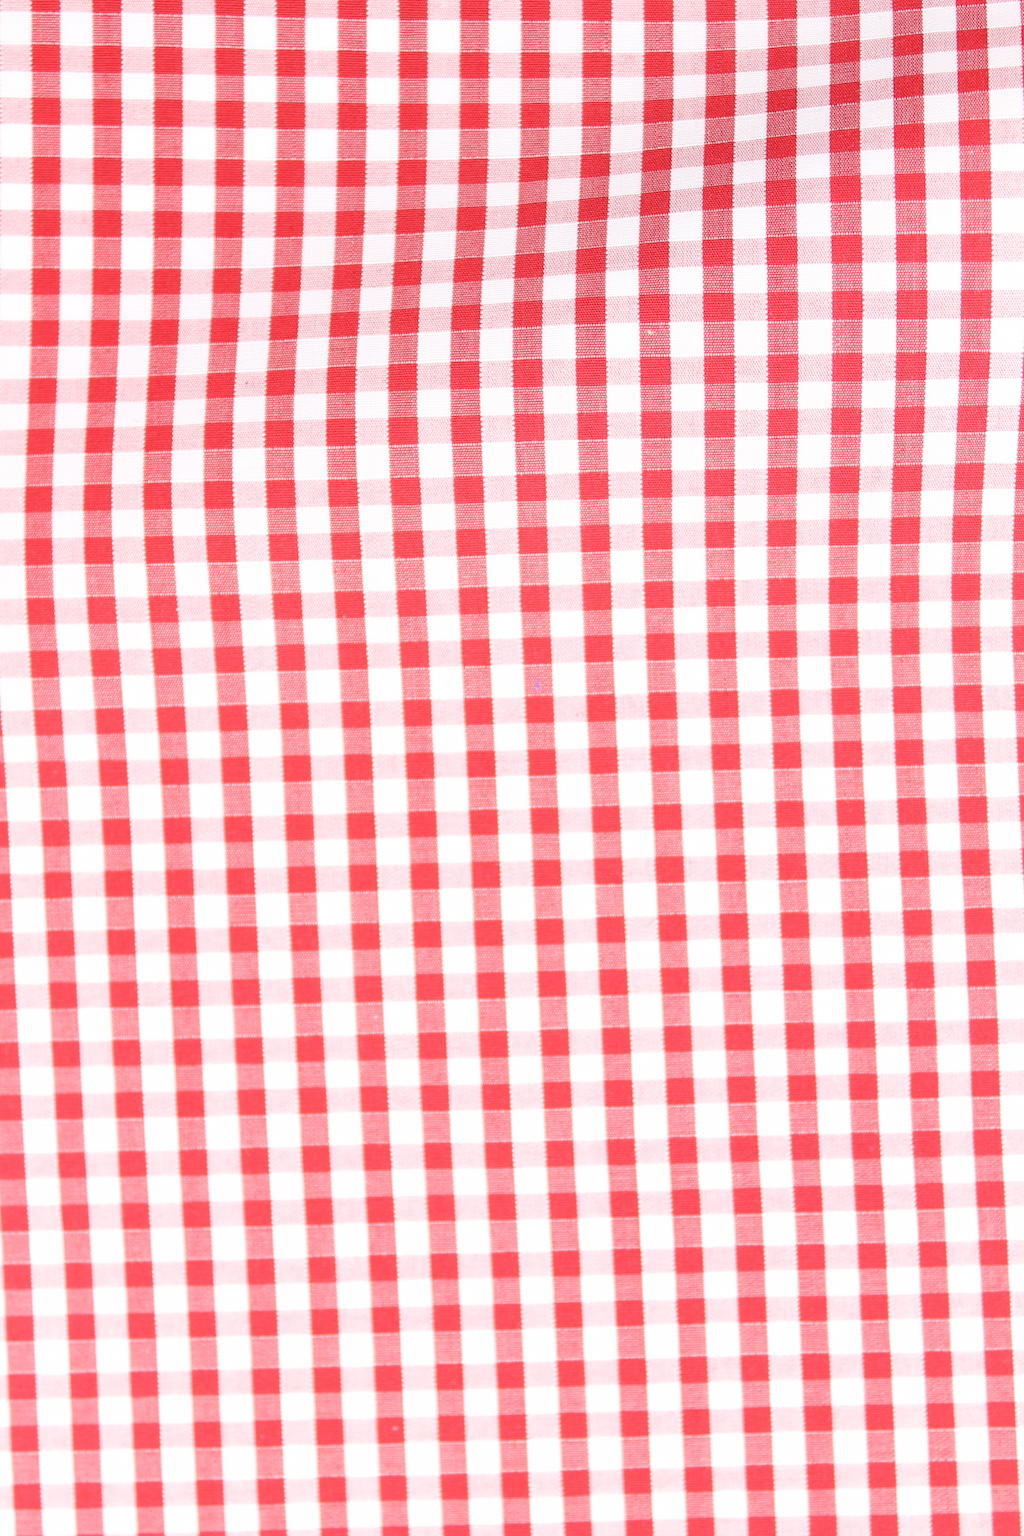 6613 Medium Red Gingham.JPG